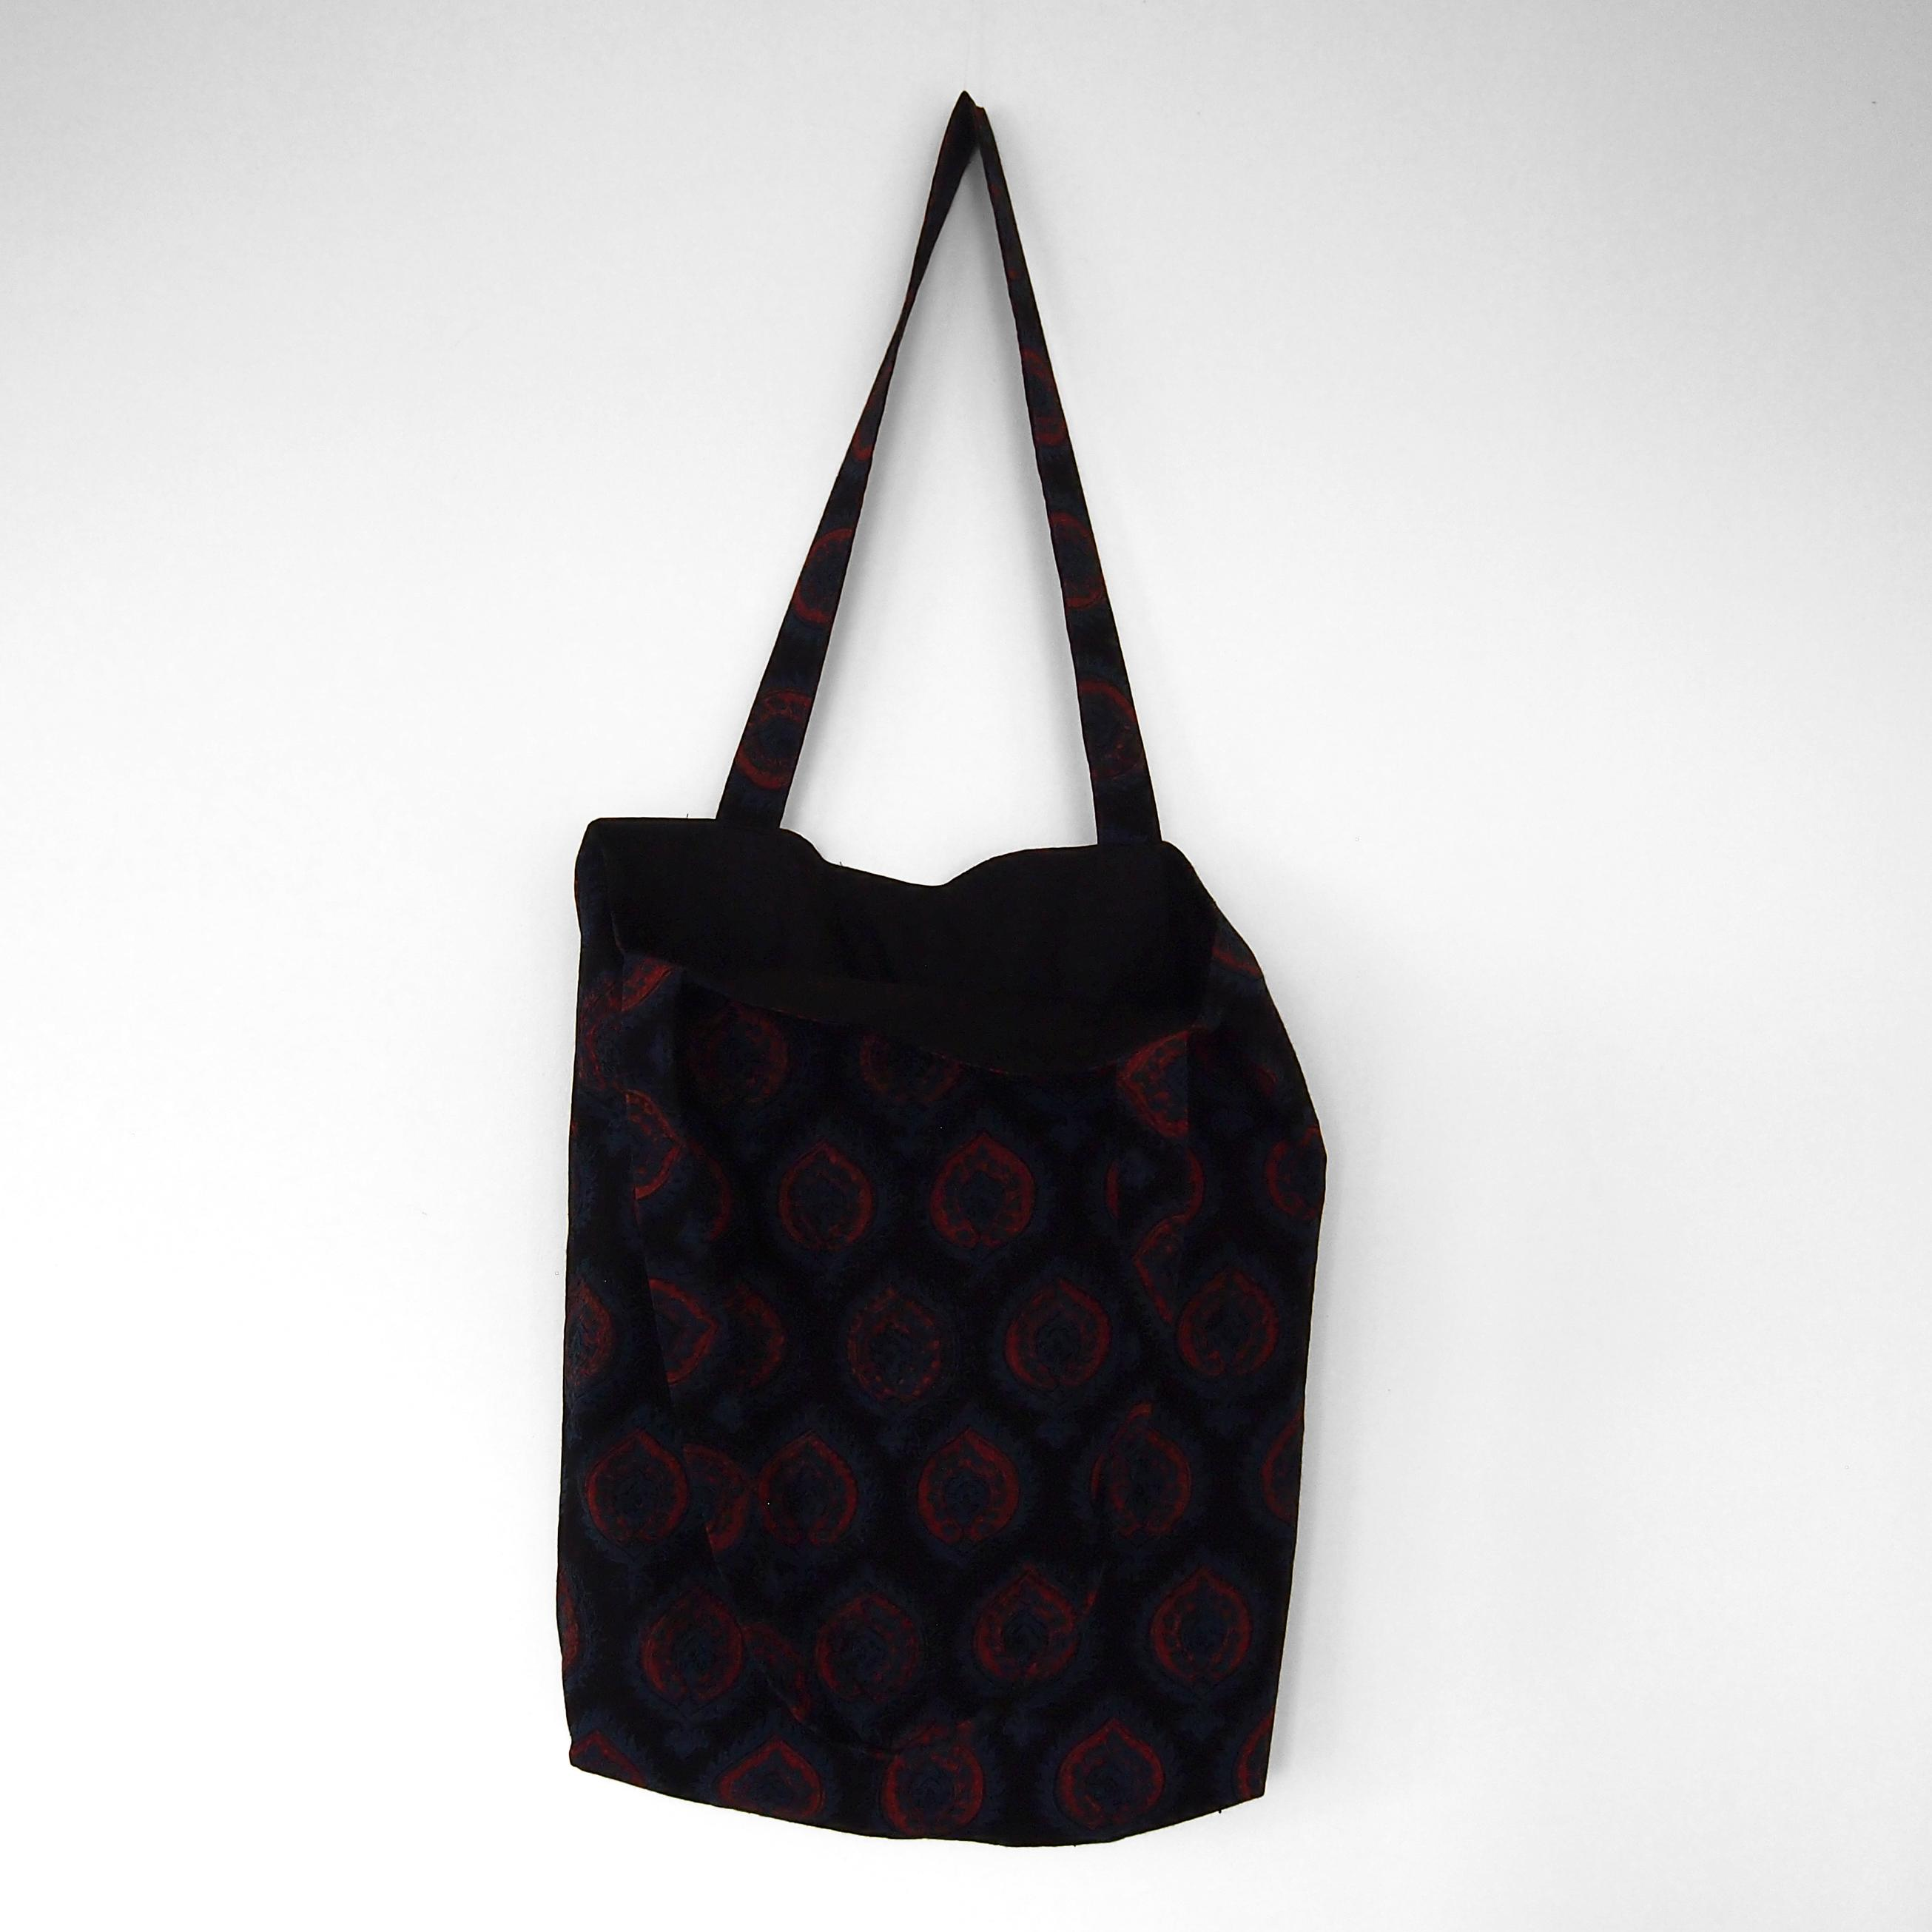 block printed cotton tote bag, natural dye, black, blue red crest design, lined with black cotton, open